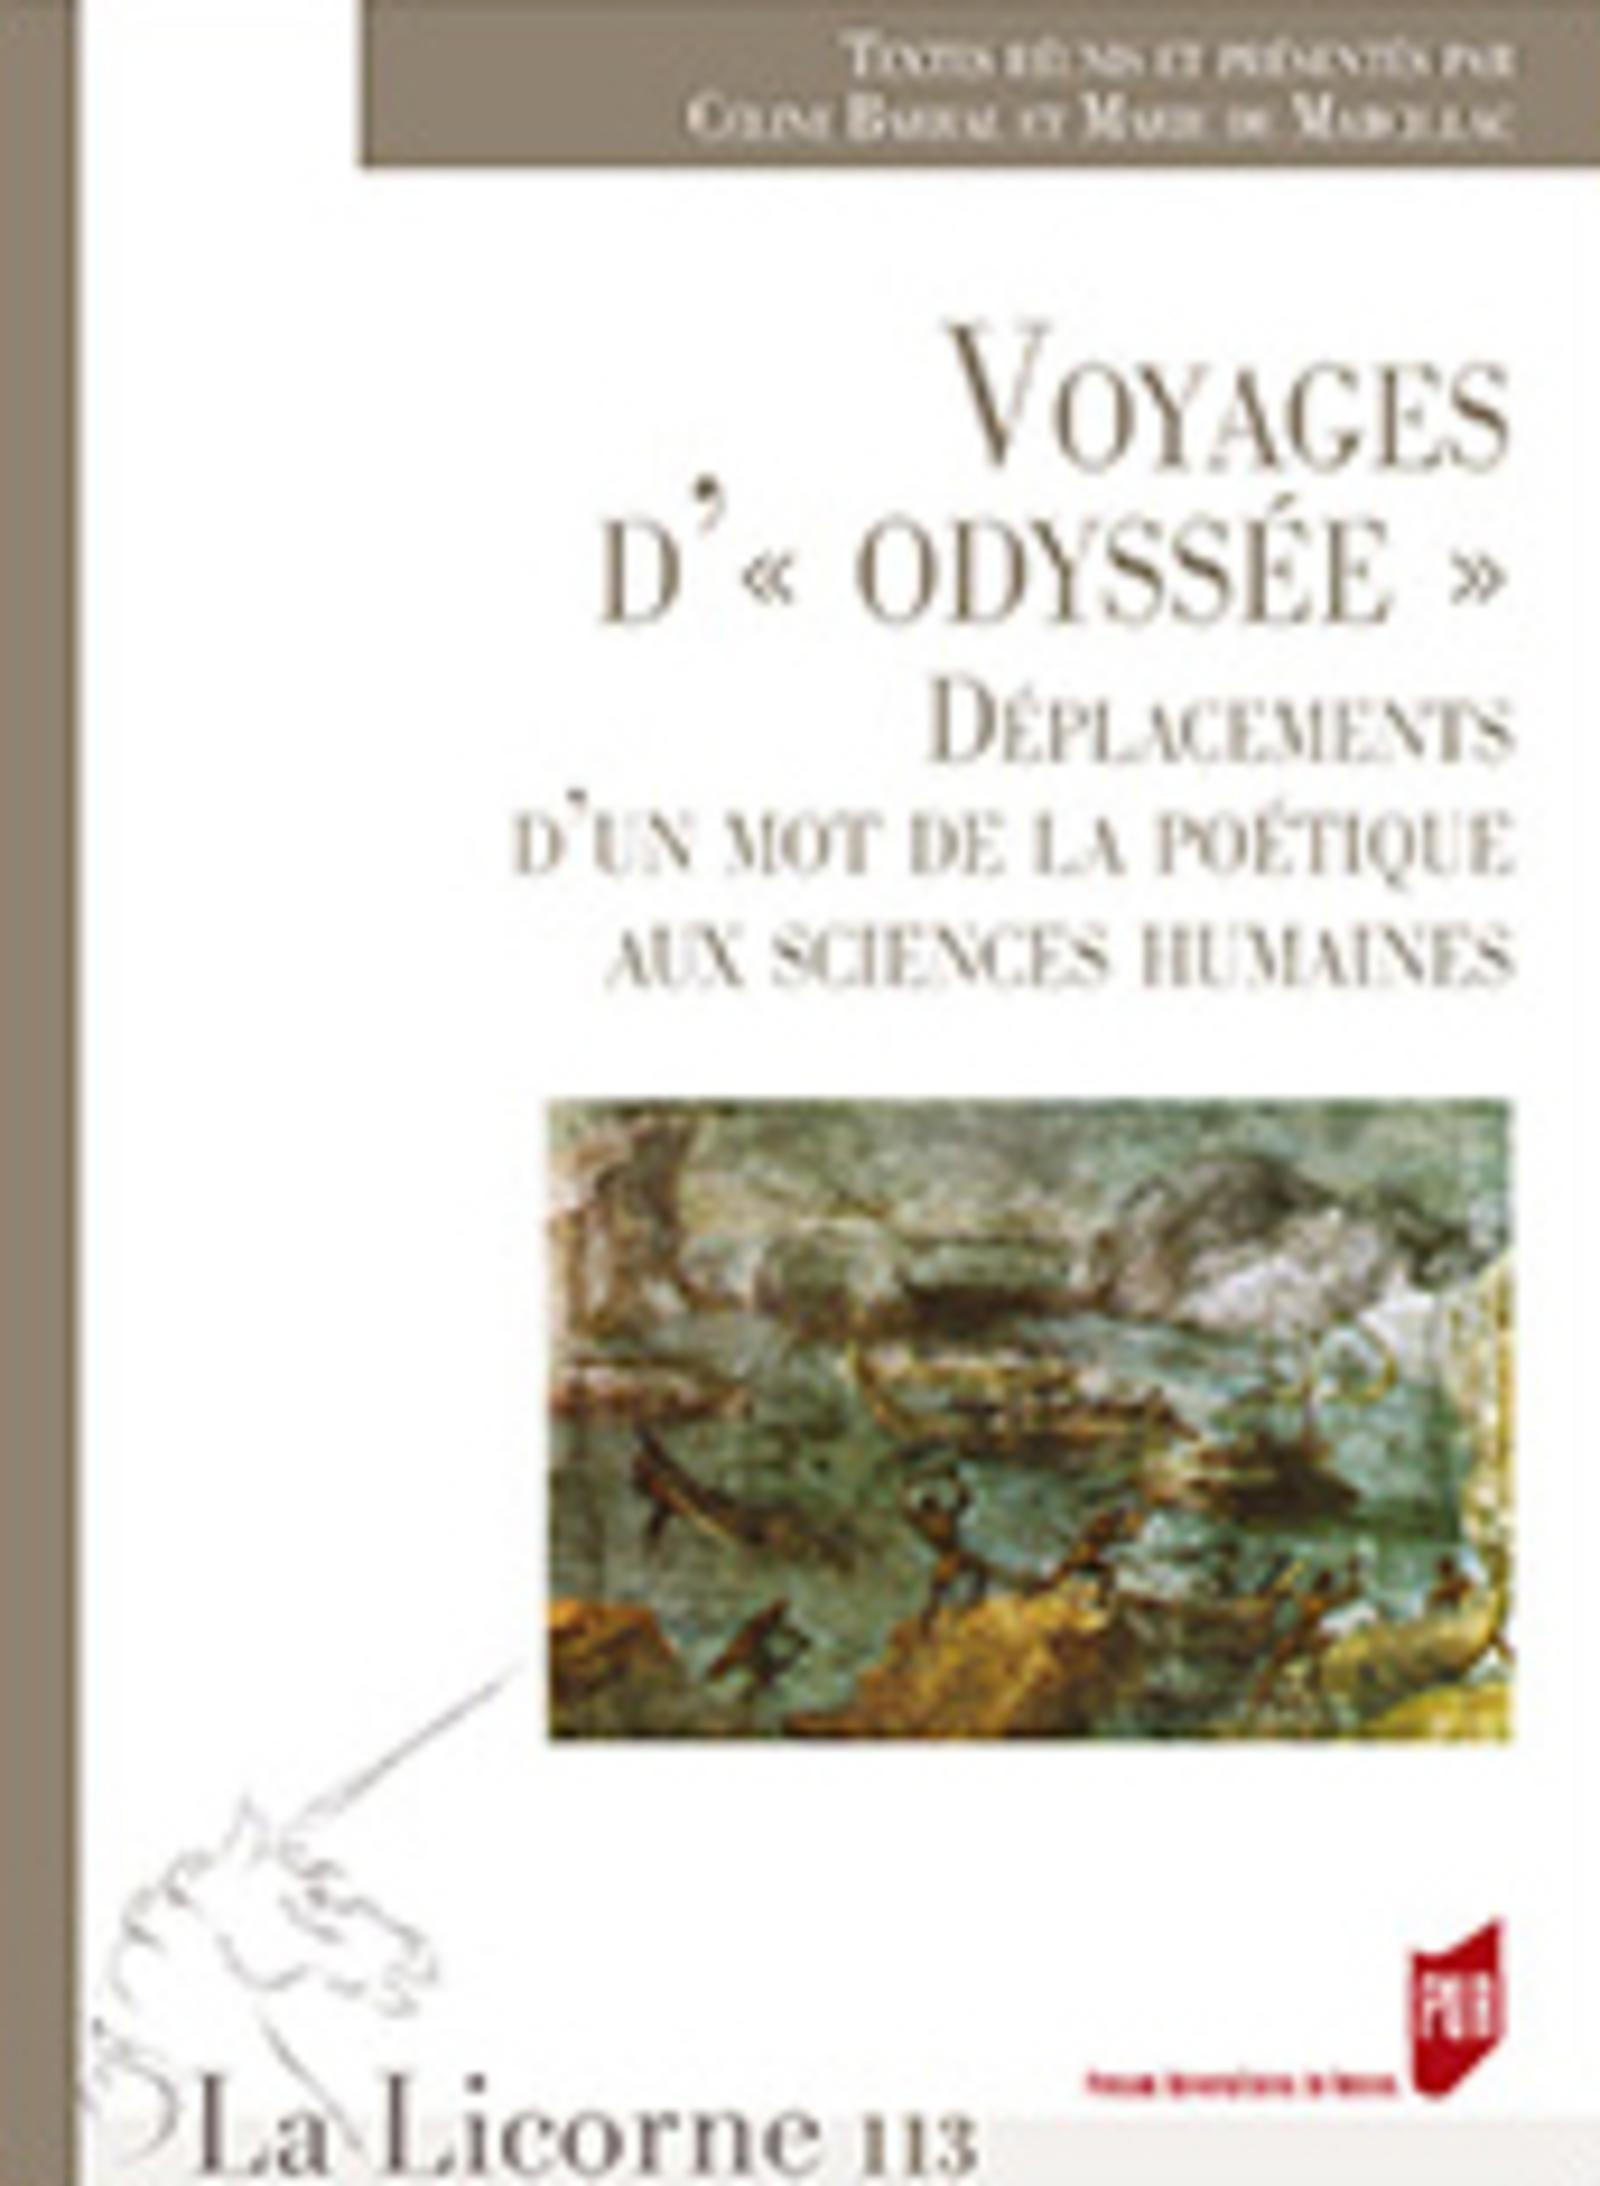 VOYAGES D ODYSSEE